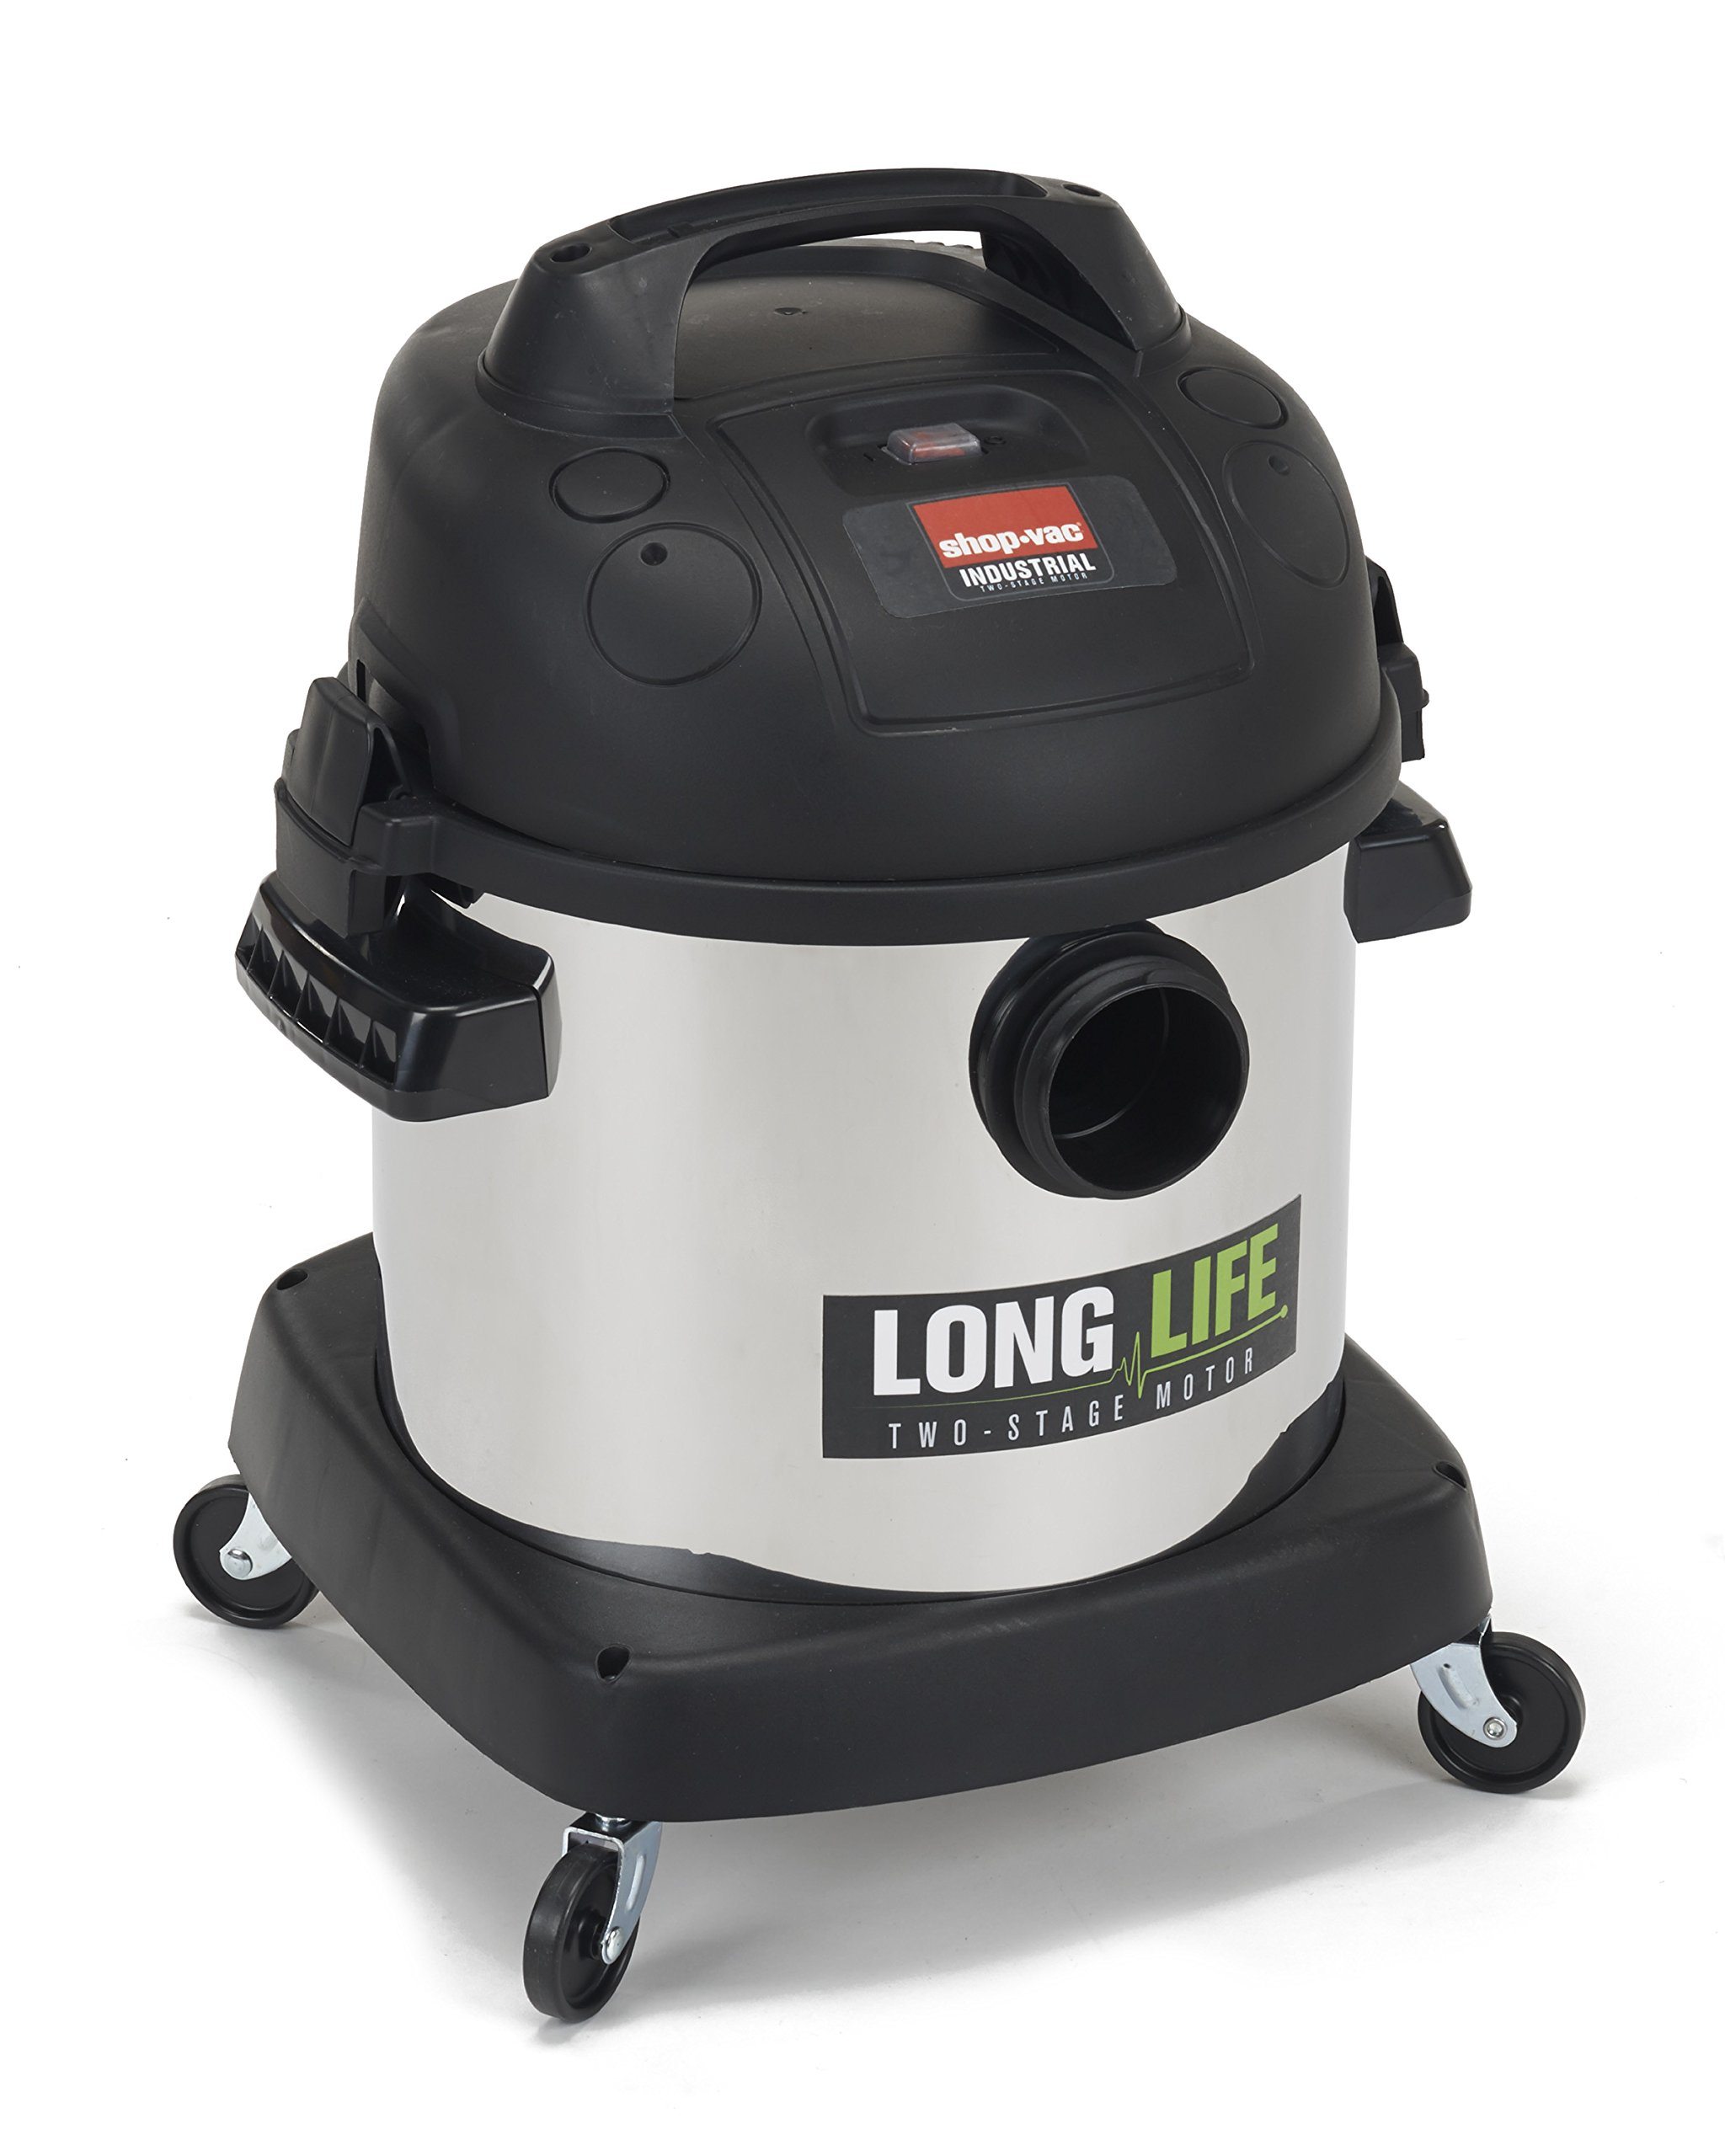 Shop-Vac 9272410 2.0 Peak HP Long Life Stainless Steel Wet Dry Vacuum, 4-Gallon